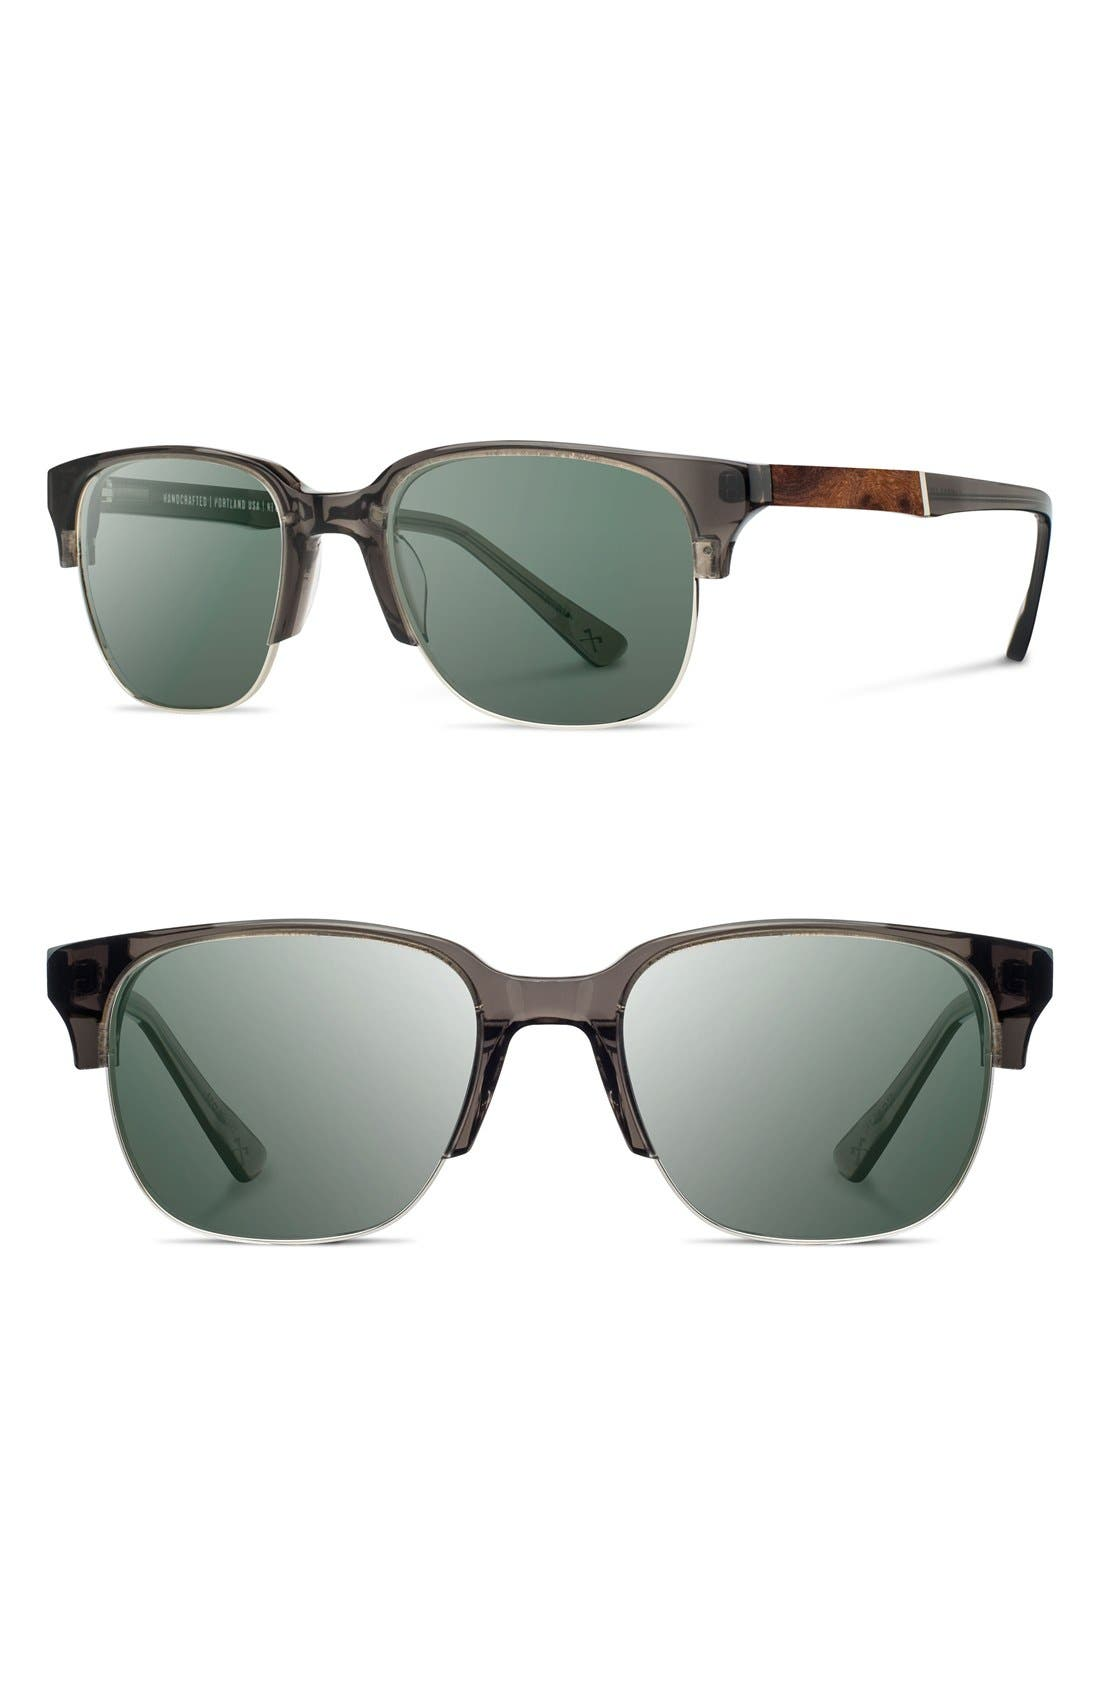 'Newport' Sunglasses,                             Main thumbnail 1, color,                             Charcoal/ Elm Burl/ Grey